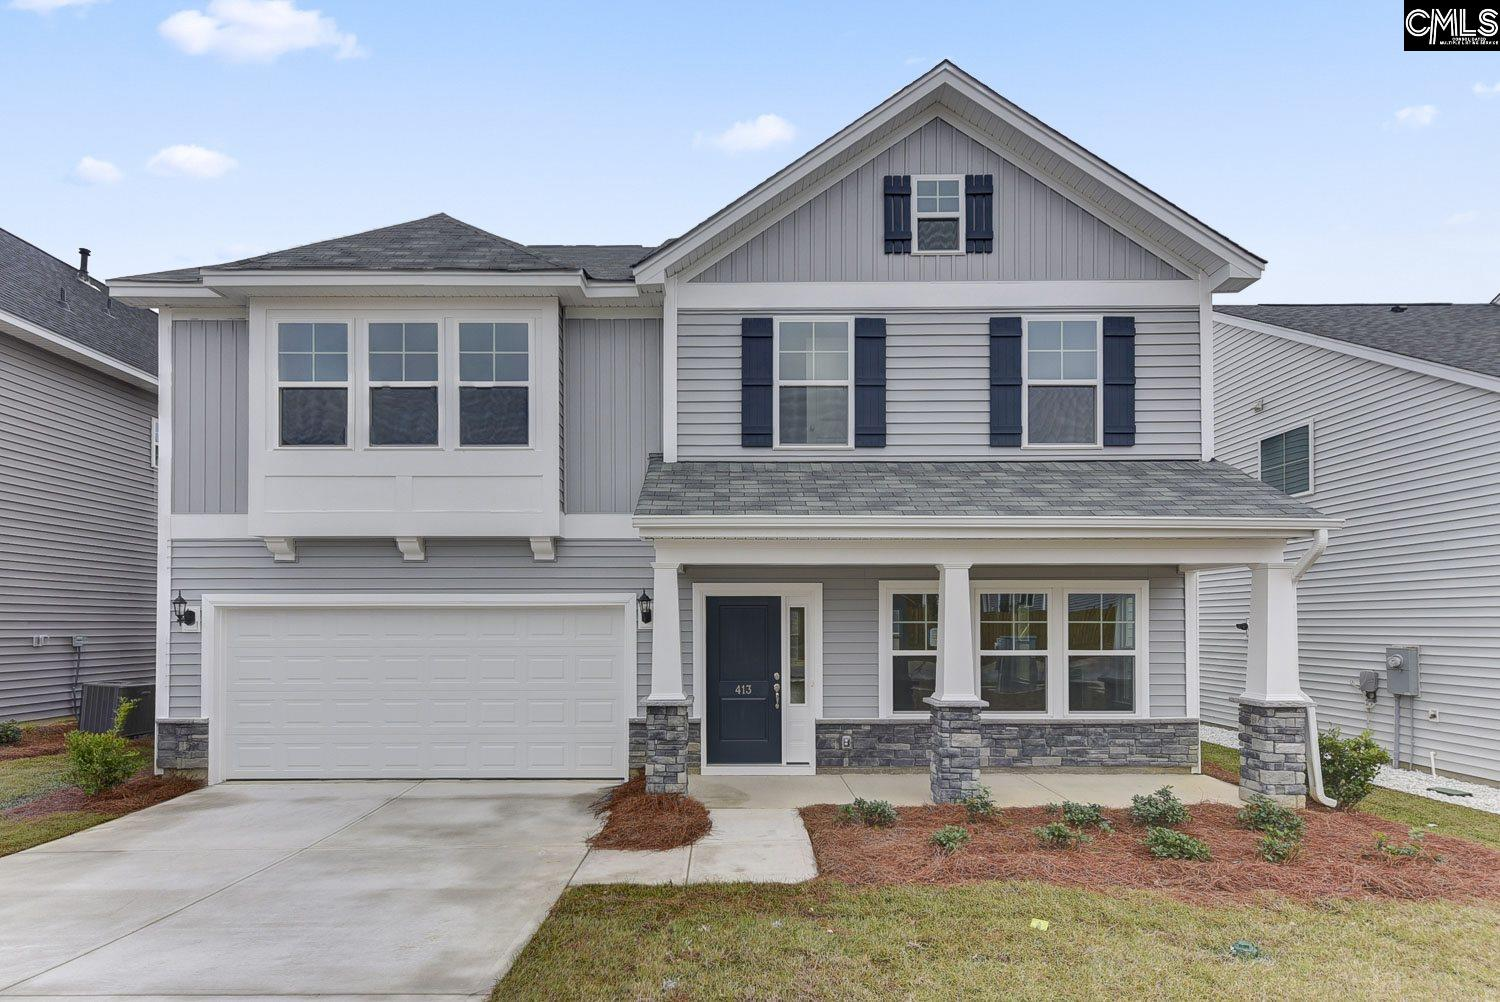 413 Madison Park Lexington, SC 29072